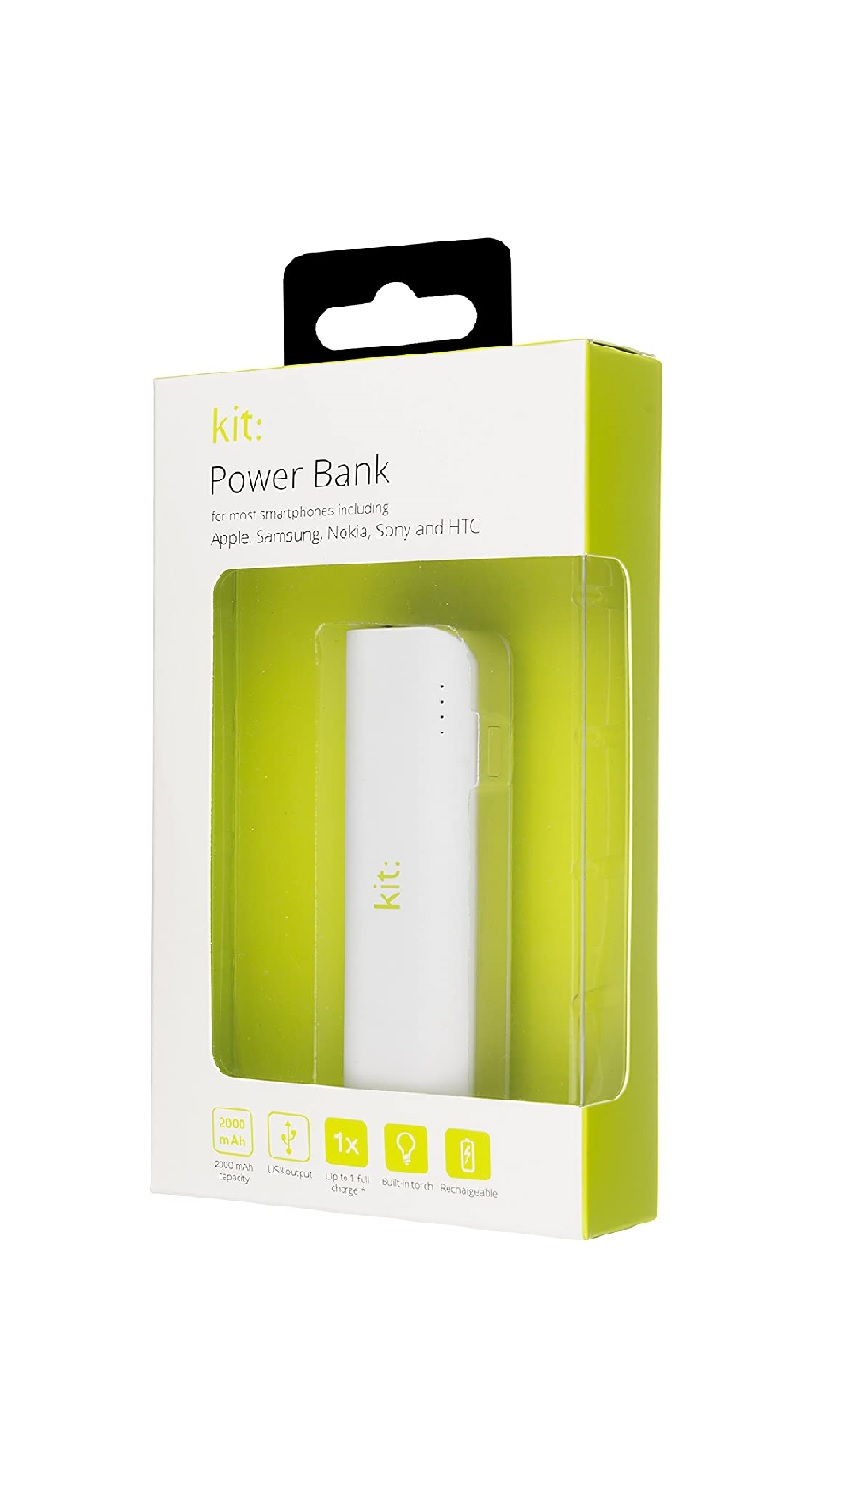 2000mAh USB Powerbank with built-in Torch, New, Retail Boxed